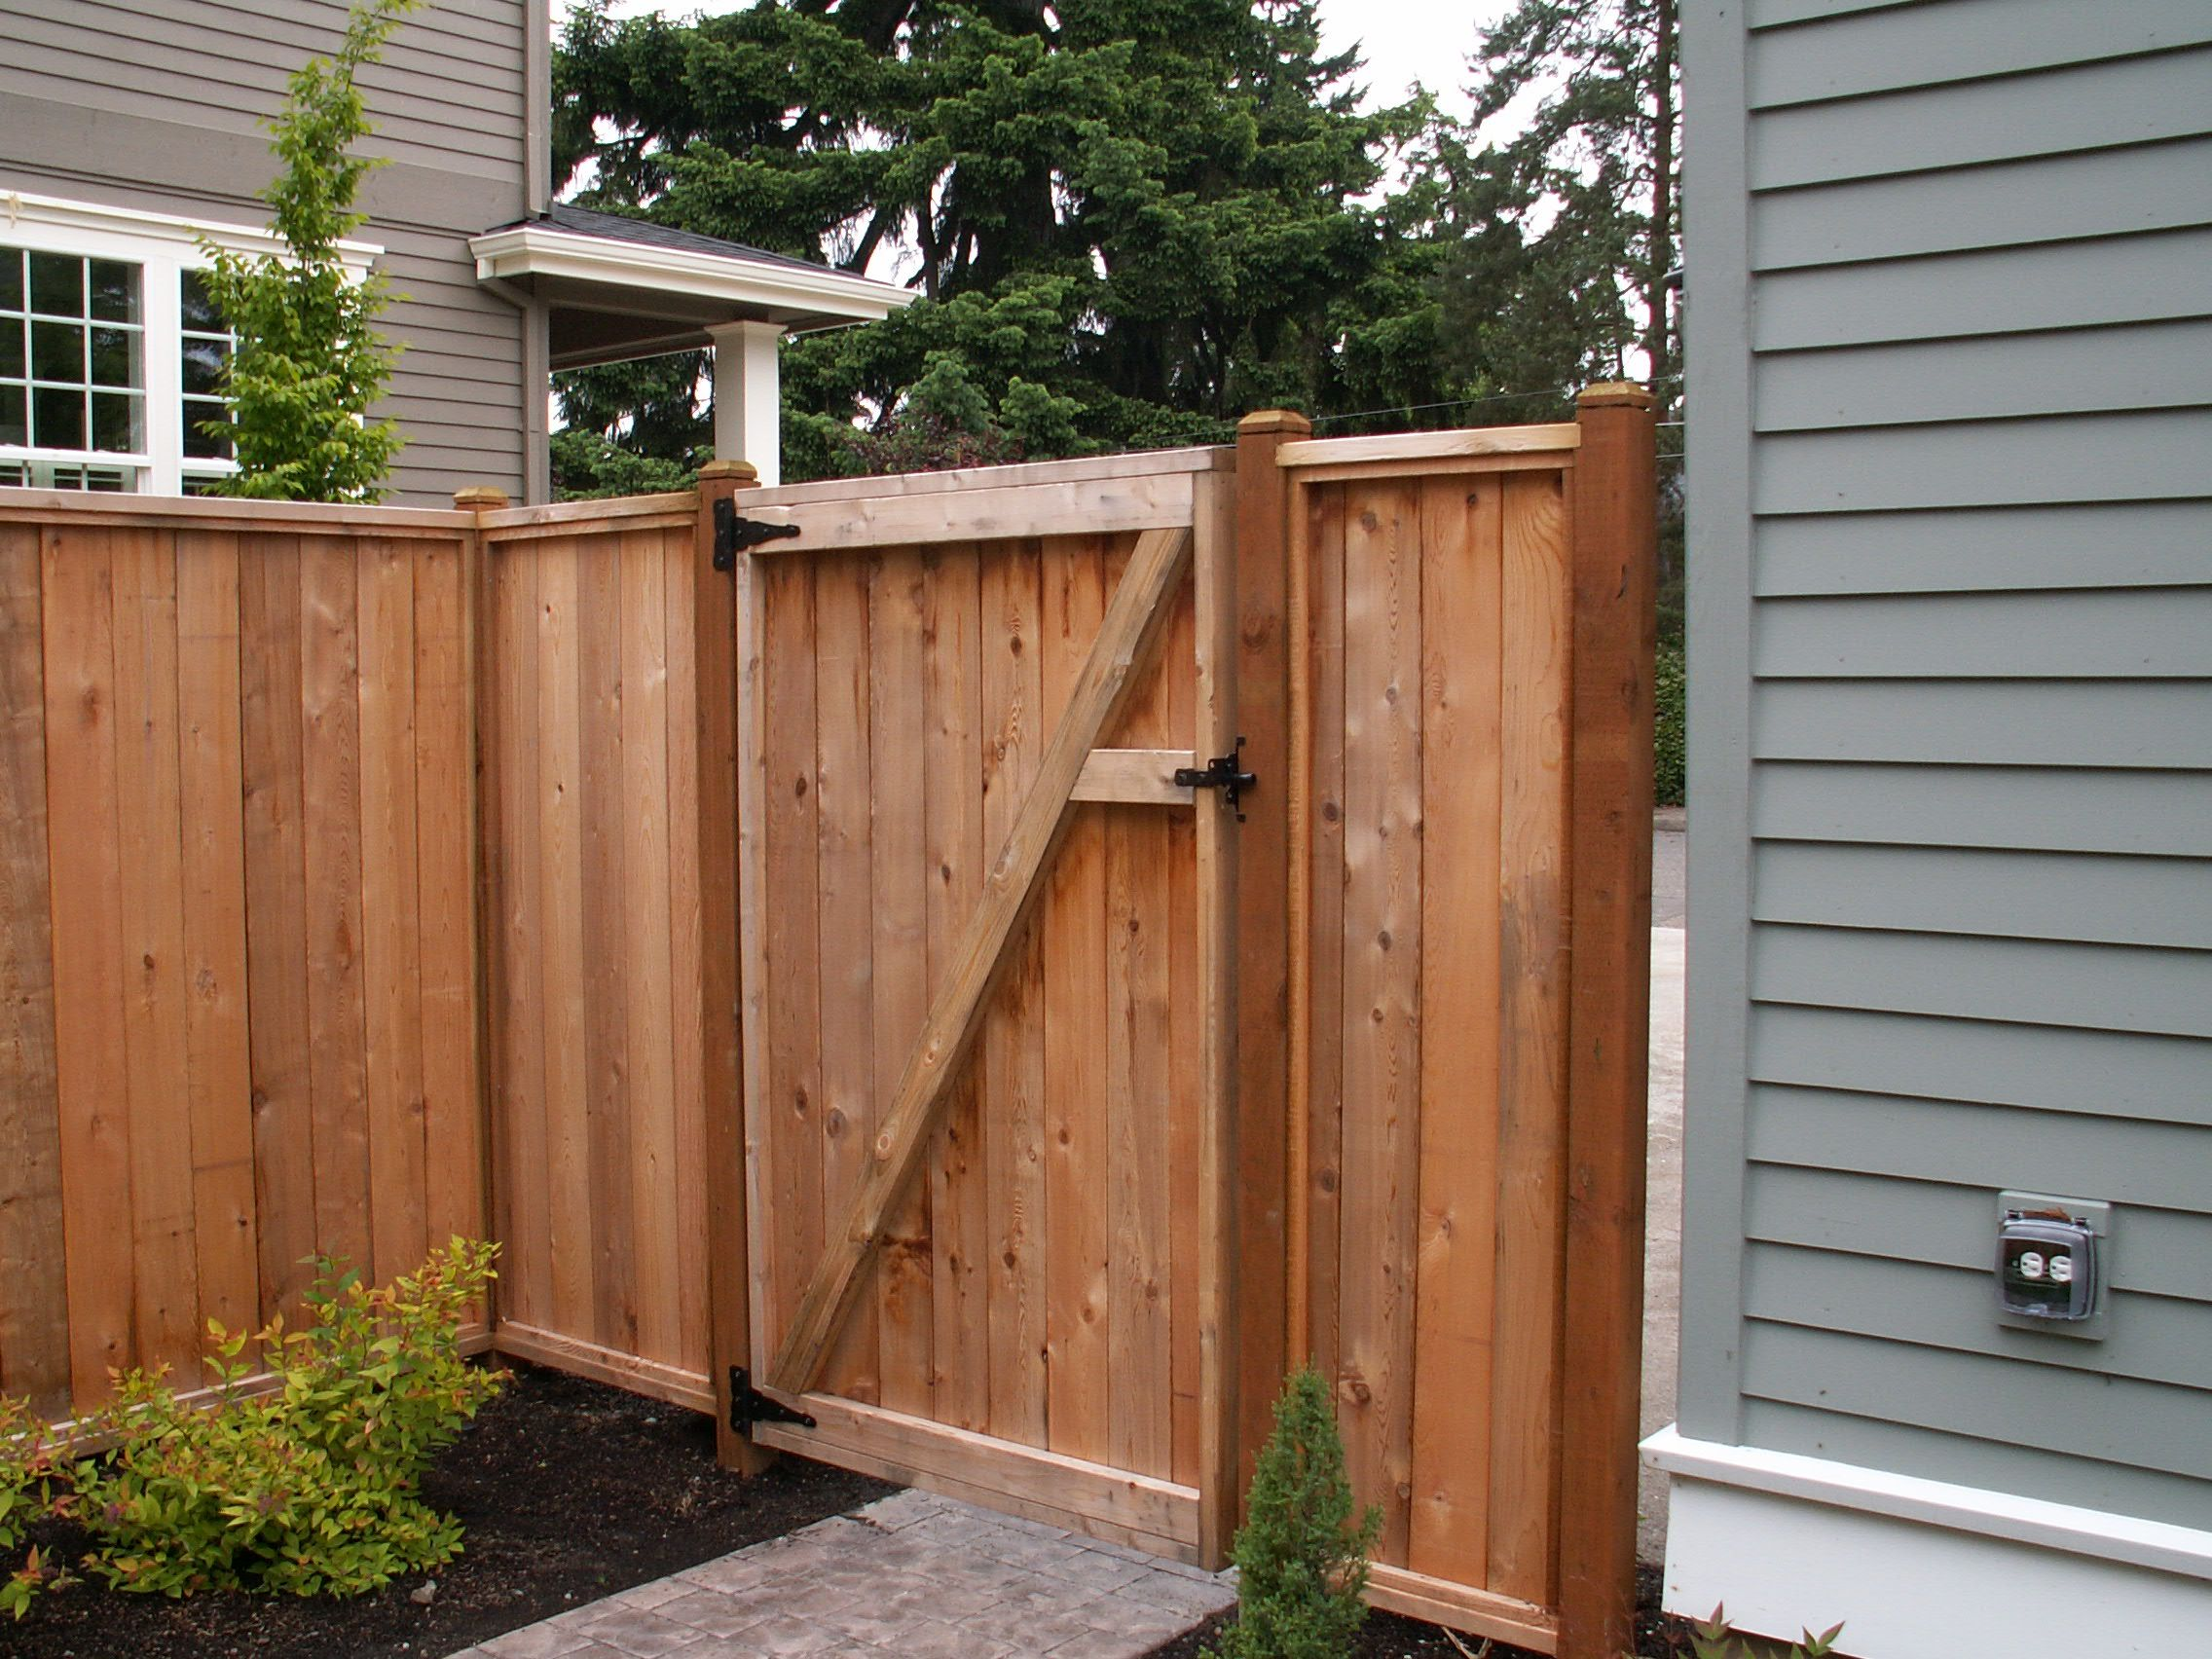 Fence door fencepicket fence with gate wood fence door Wood valley designs